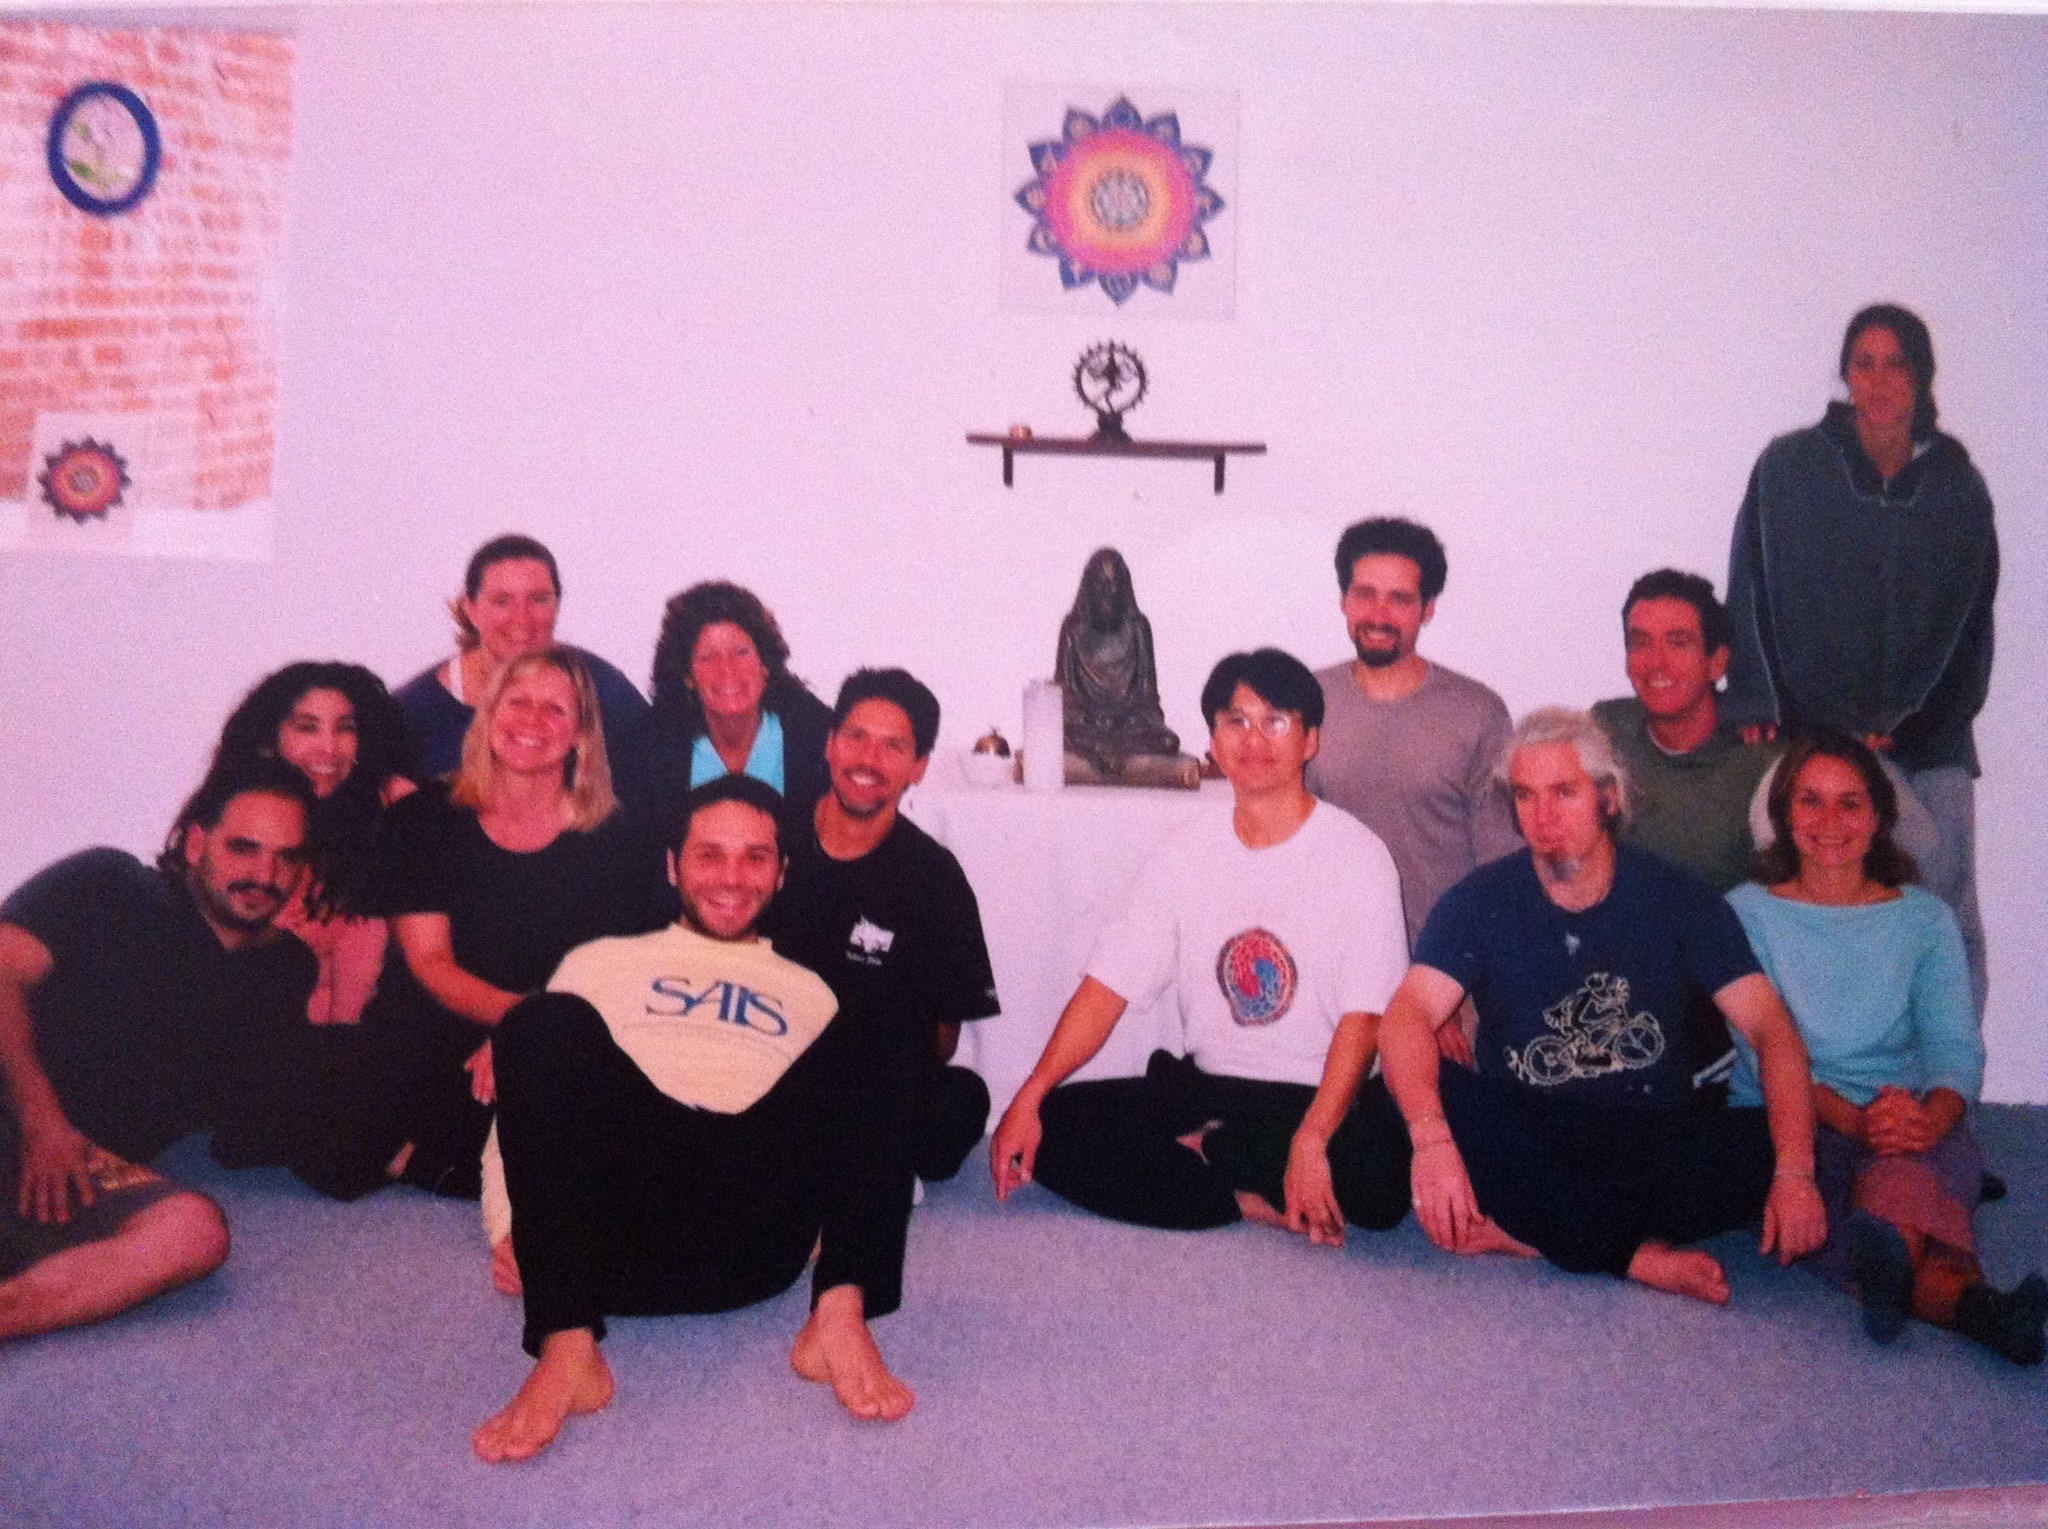 1998 Thai Massage course with Kam Thay Chow